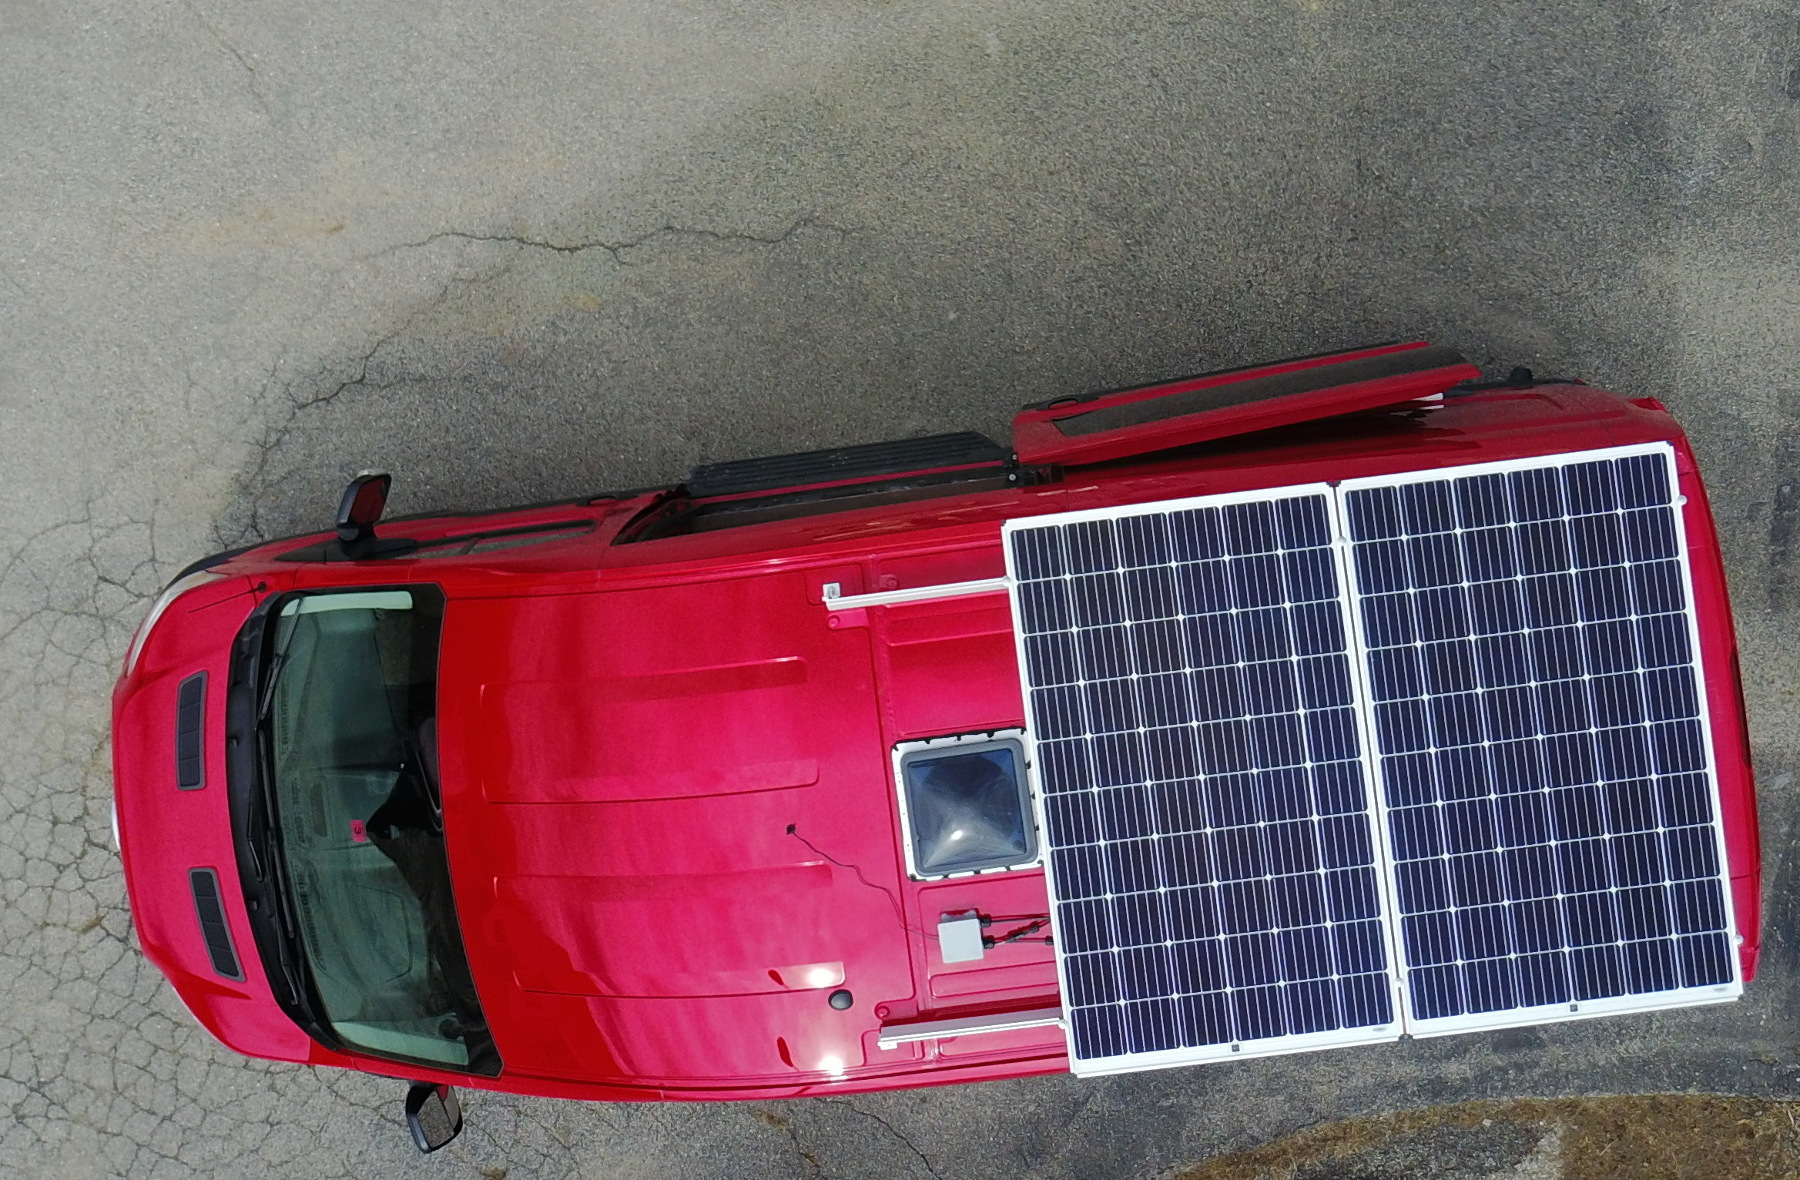 roof-solar-on-cargo-van